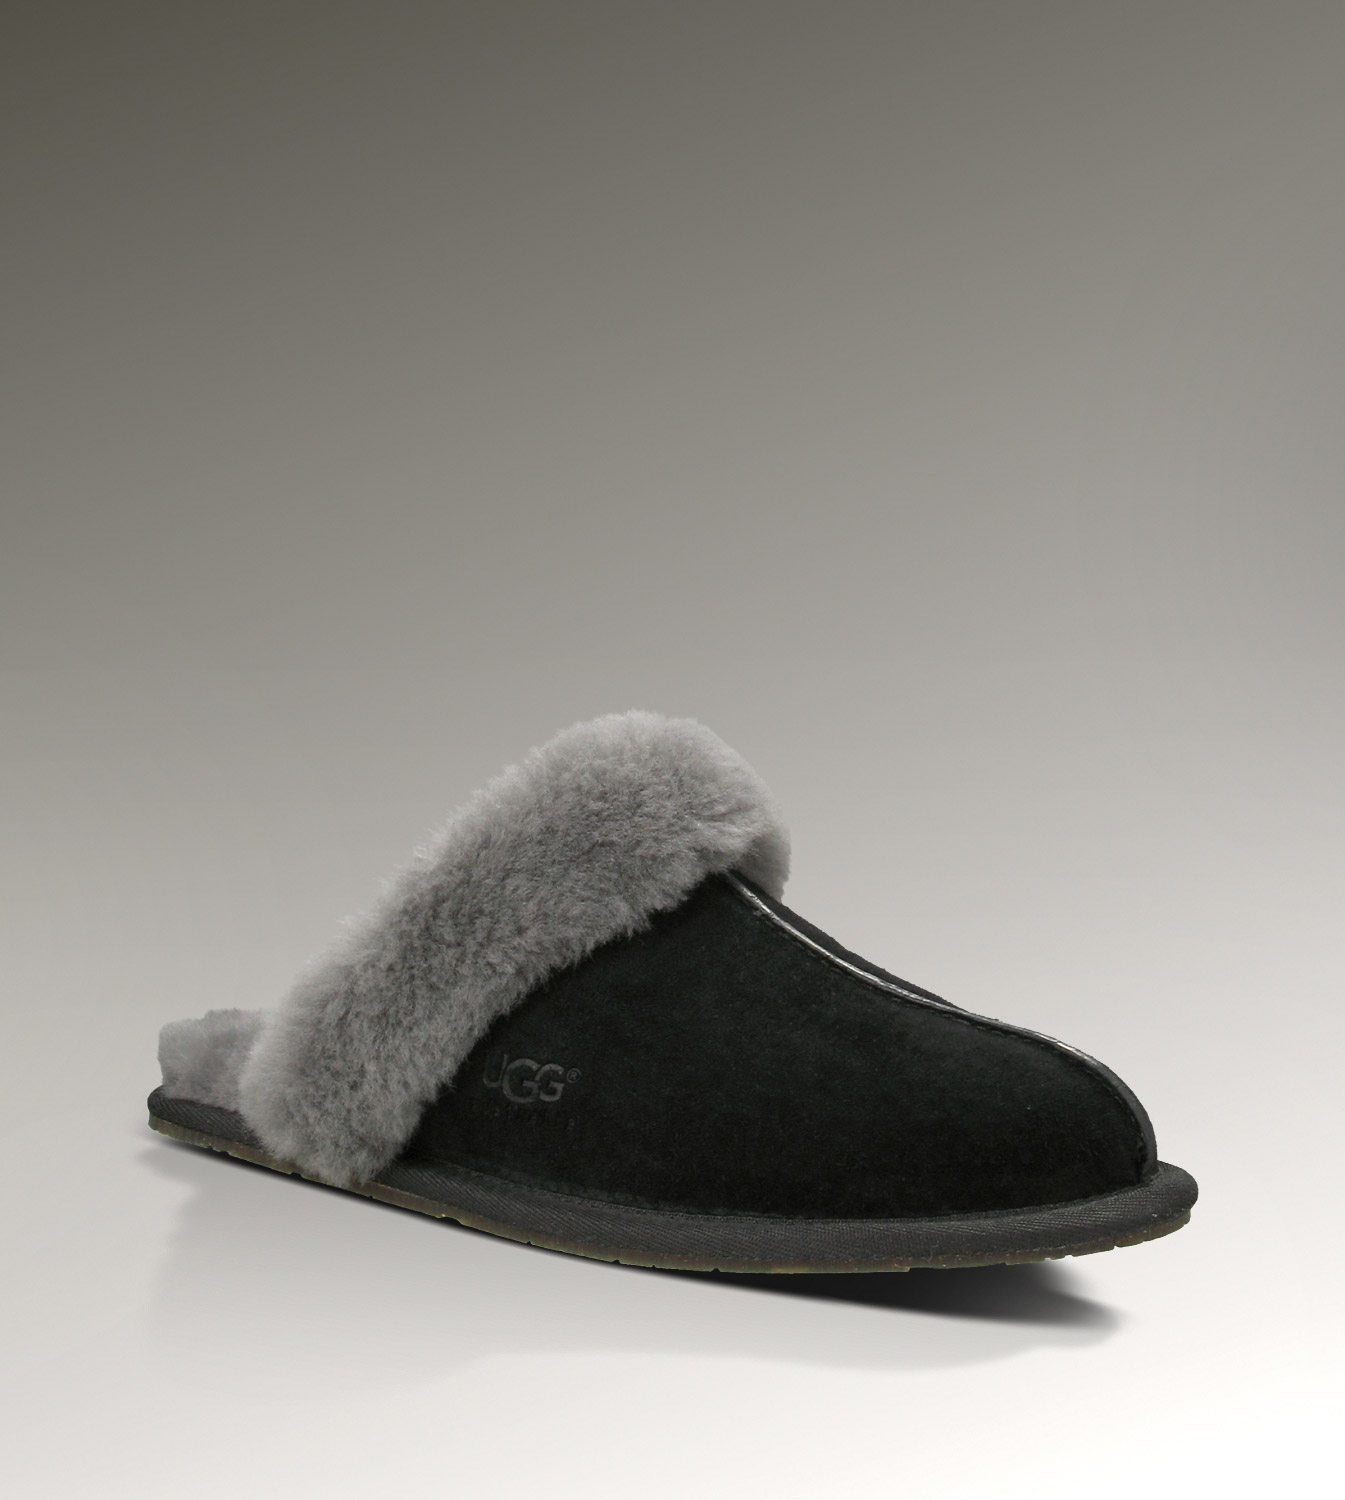 UGG Scuffette II 5661 Black Slippers